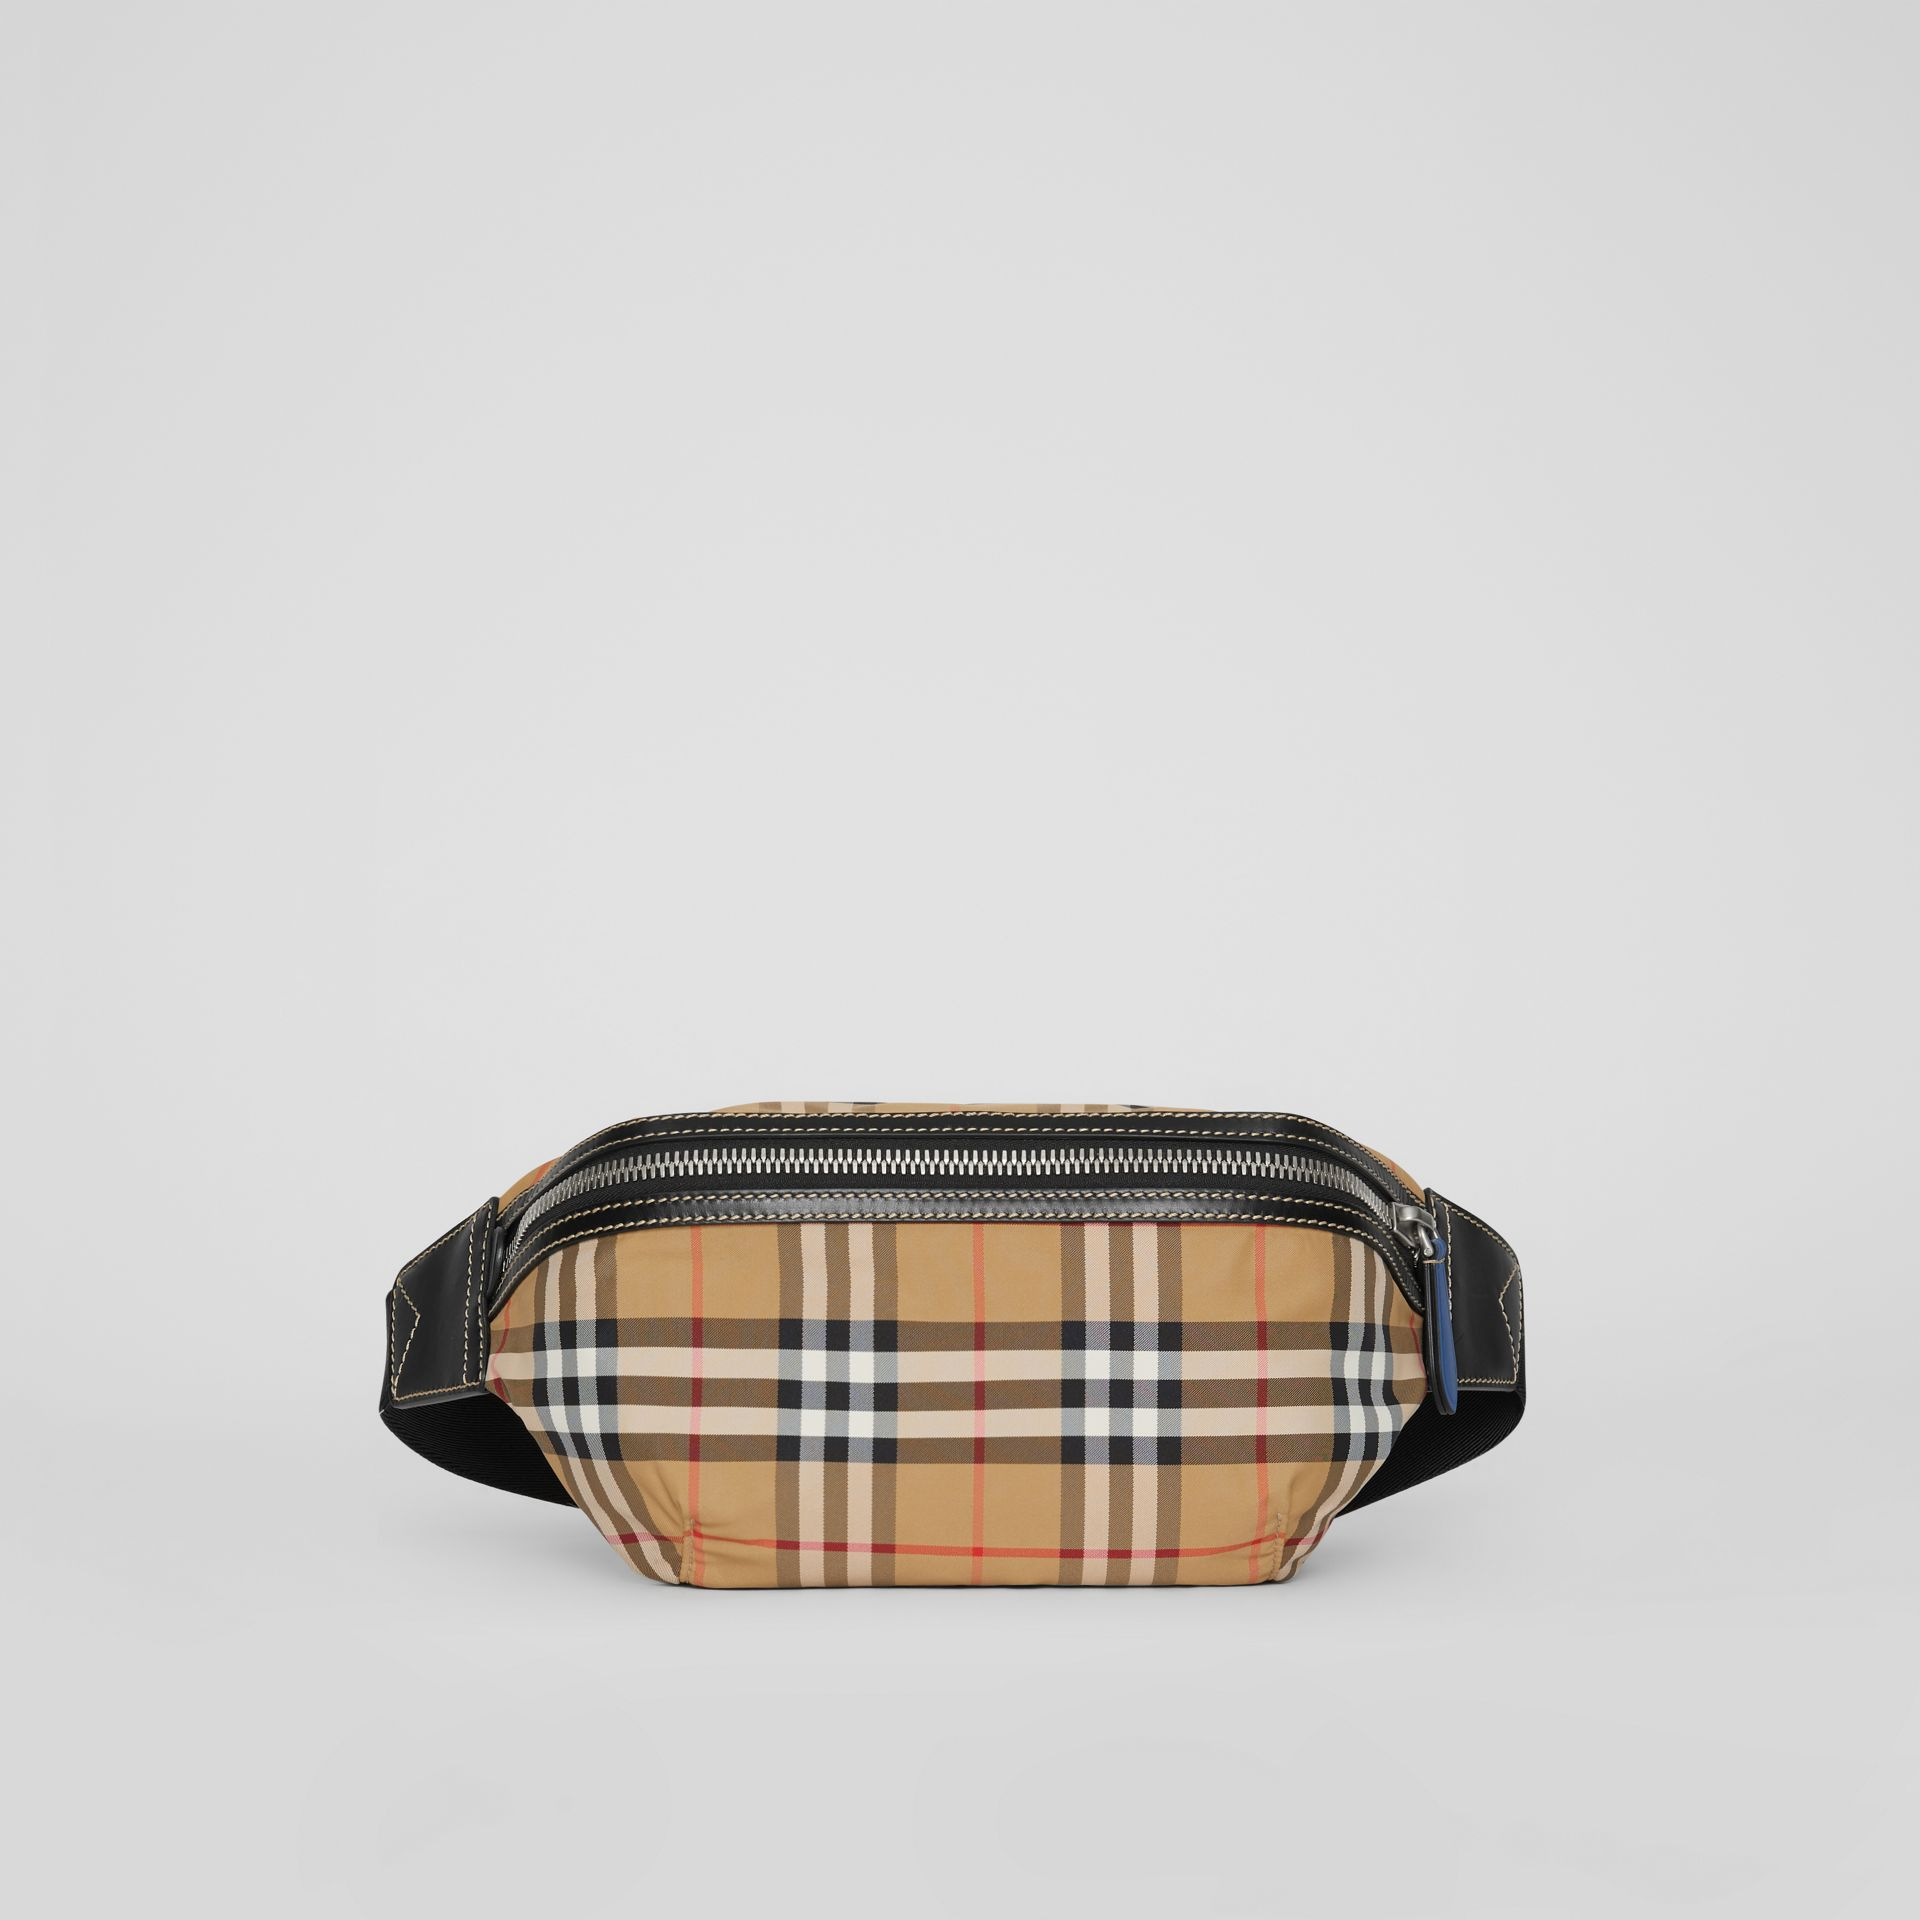 Medium Vintage Check Bum Bag in Antique Yellow | Burberry - gallery image 4